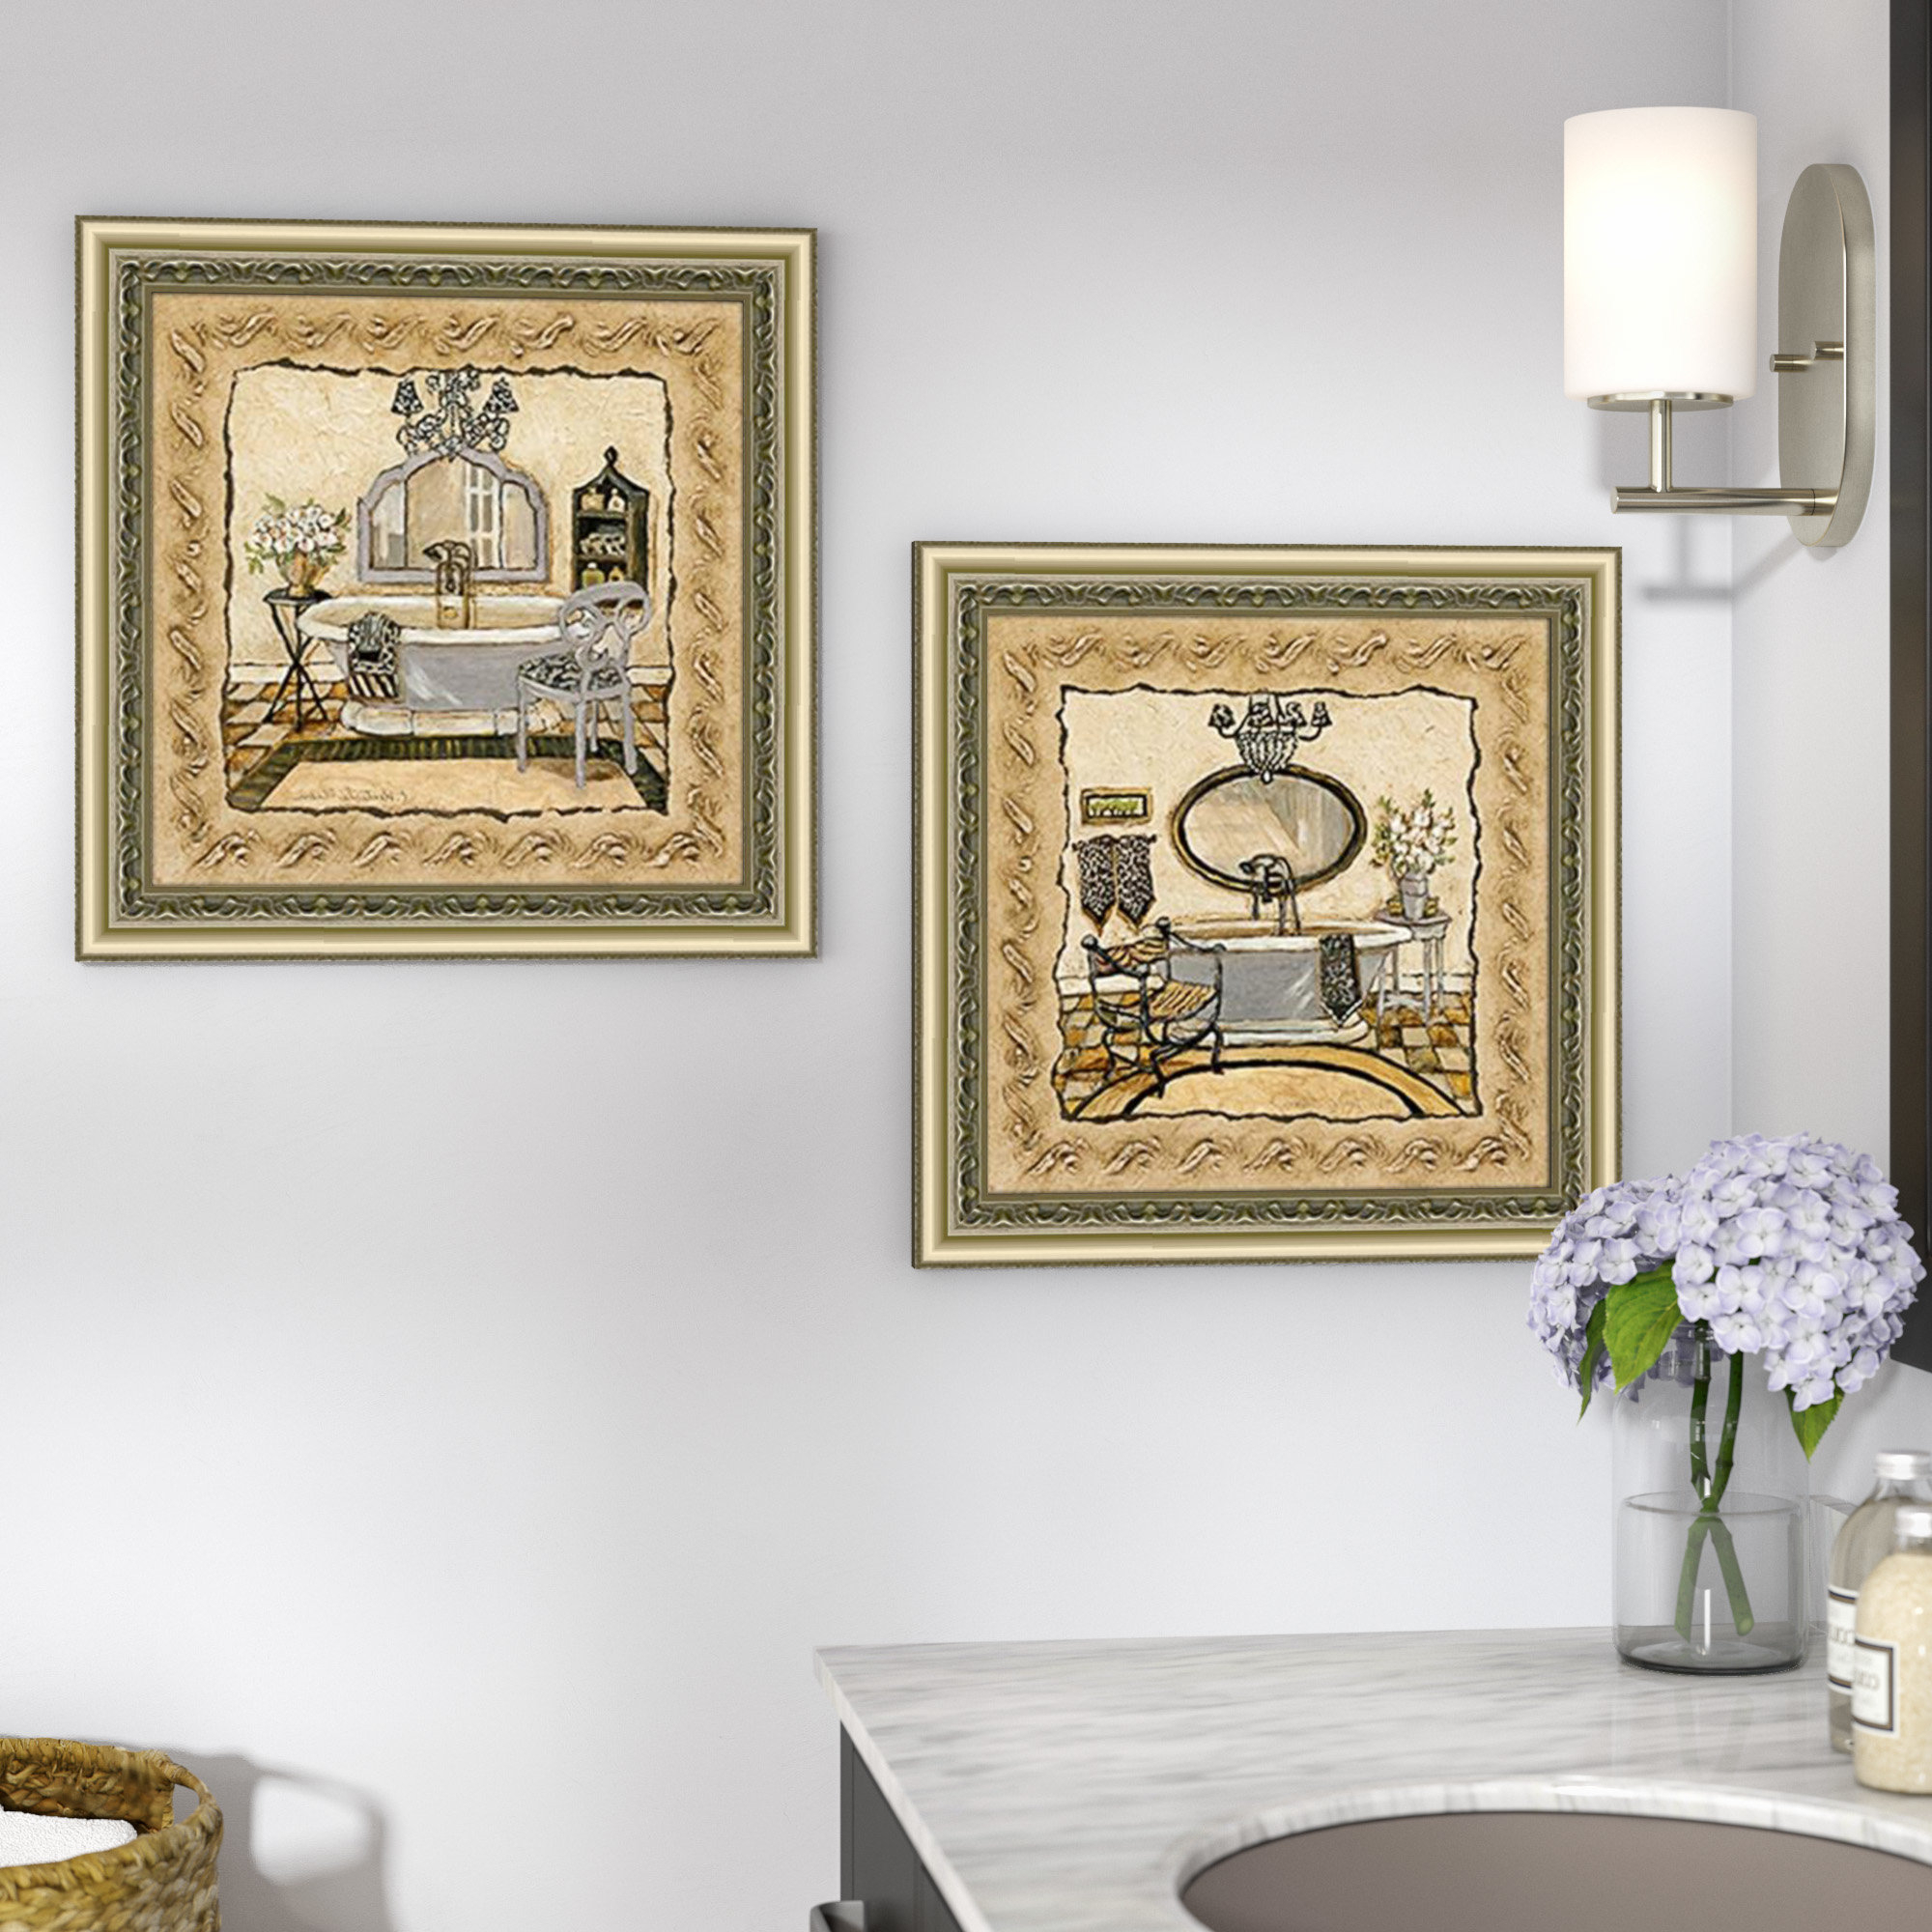 Charlton Home 'chandelier Elegance' 2 Piece Framed Acrylic Painting In Most Recent 4 Piece Wall Decor Sets By Charlton Home (View 16 of 20)